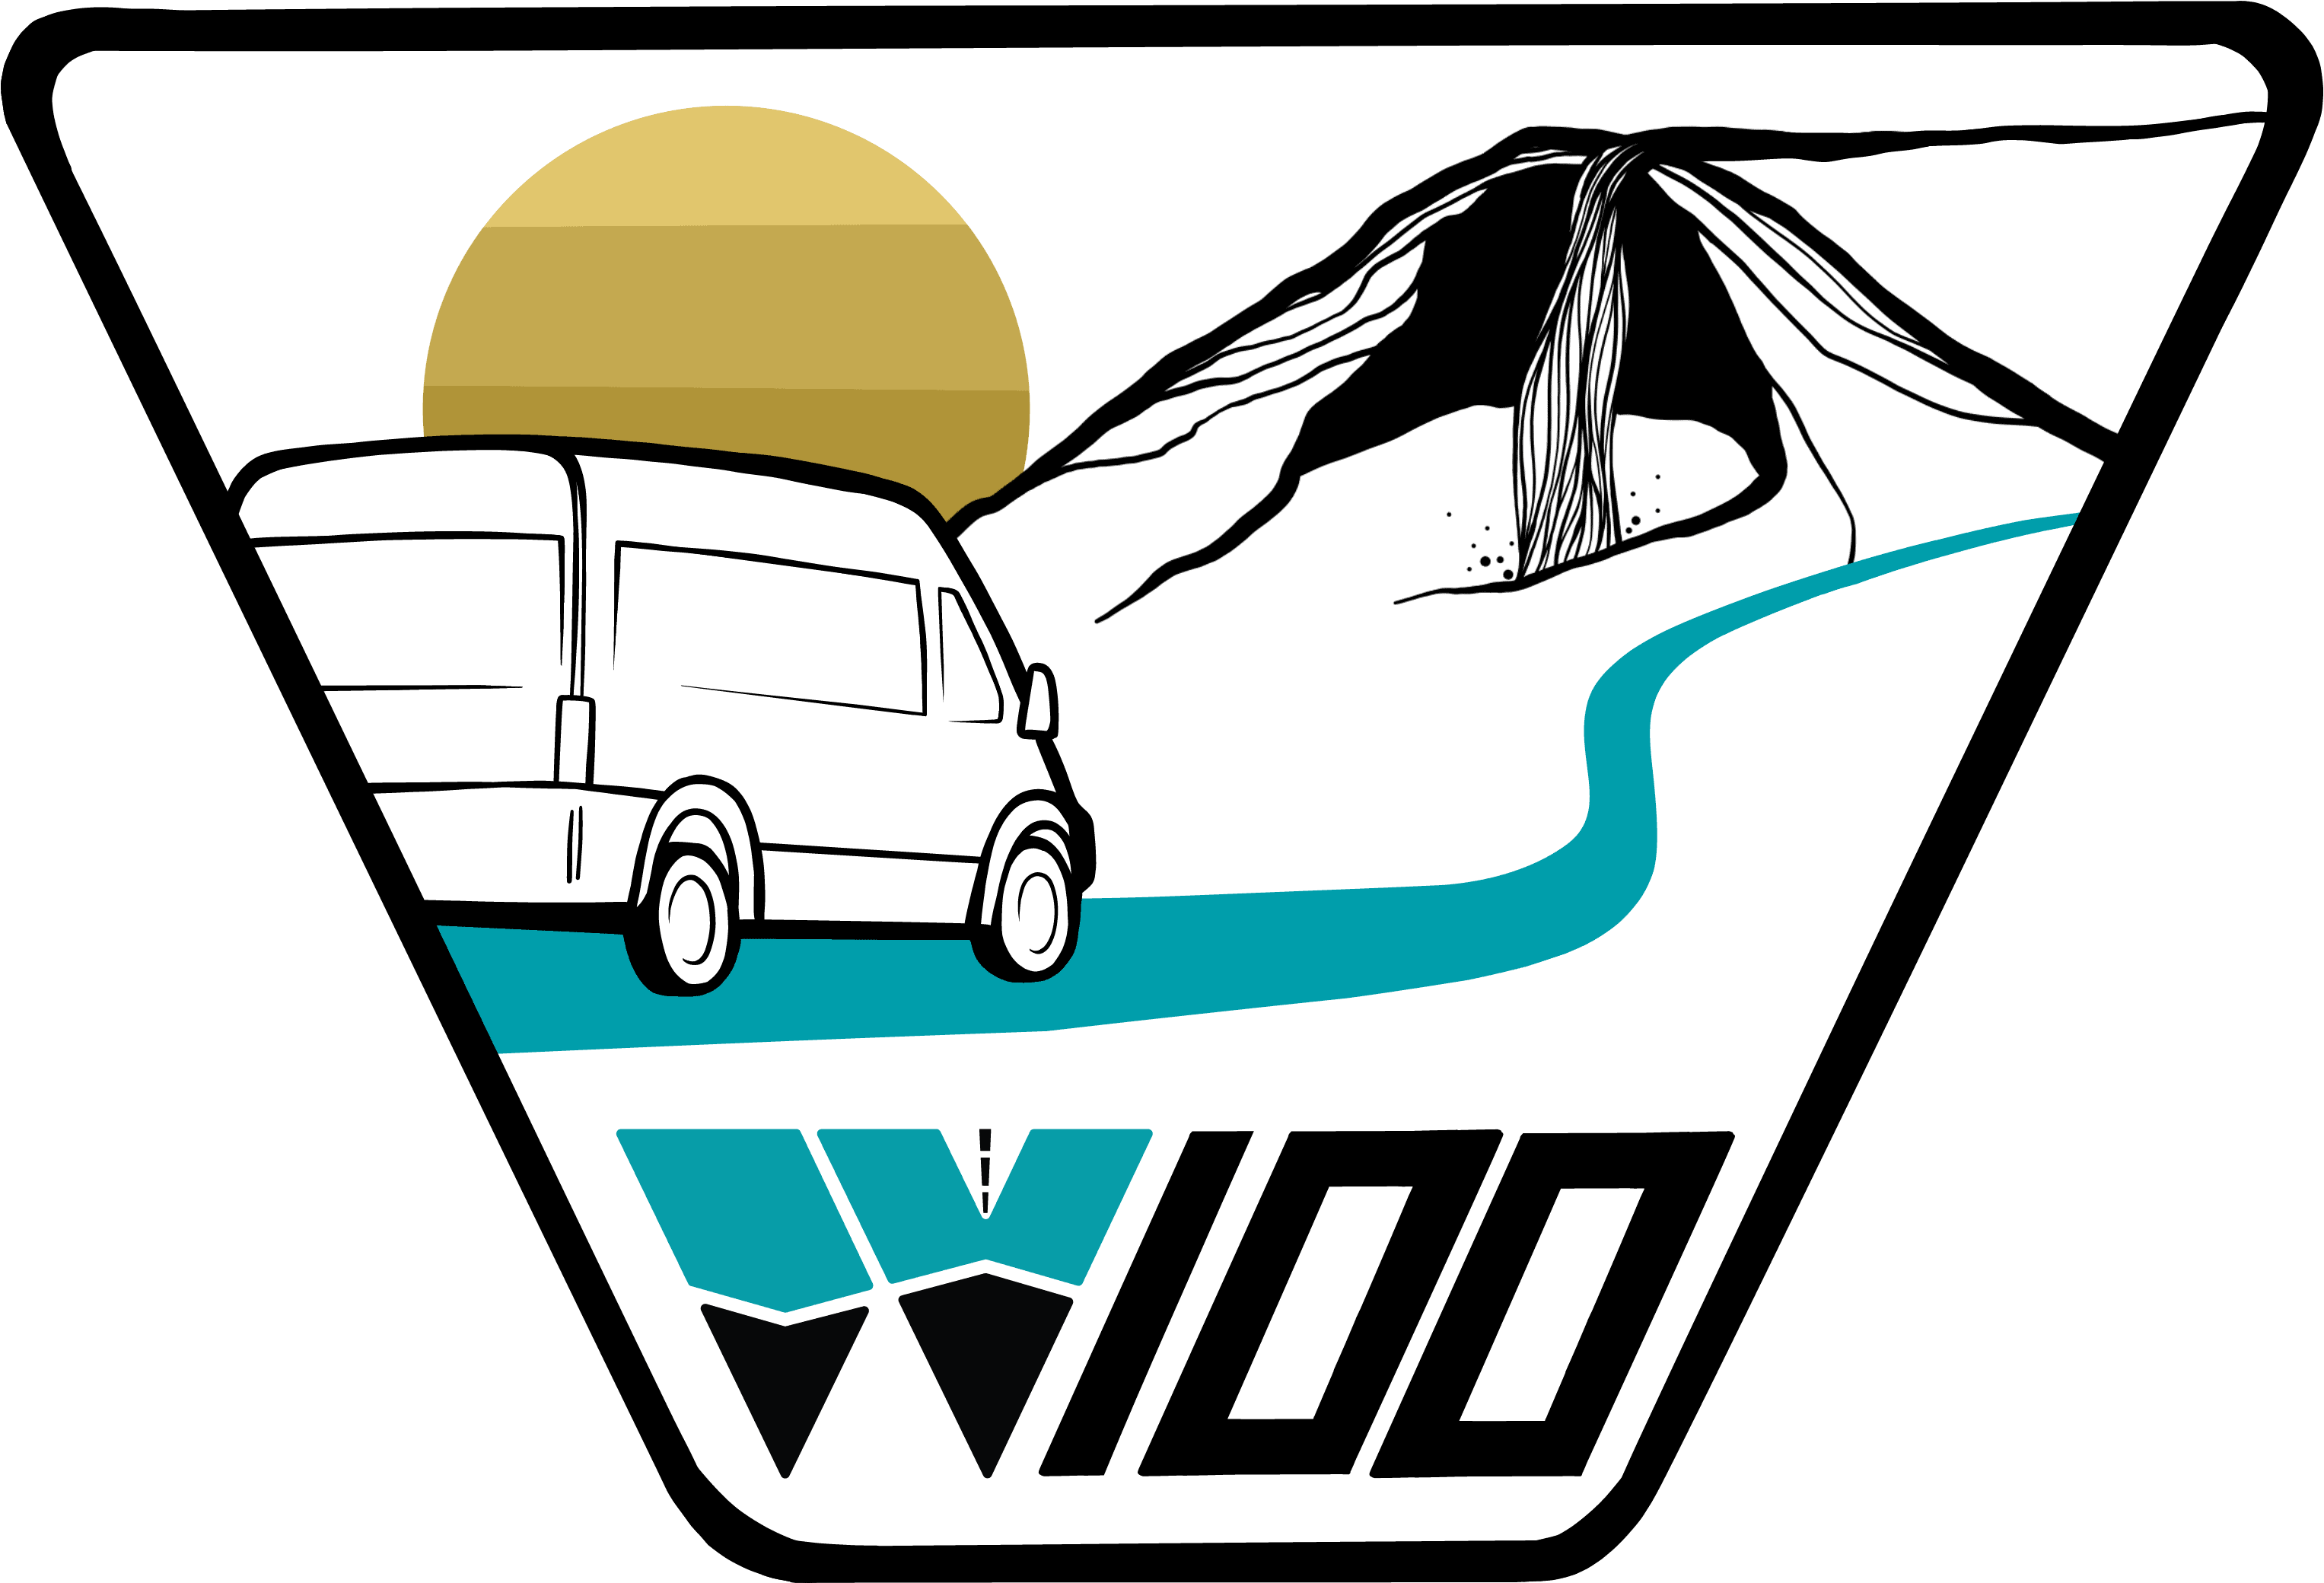 Wayfarer 100 Patch - graphic of van set against mountains with waterfall and gold setting sun on the horizon